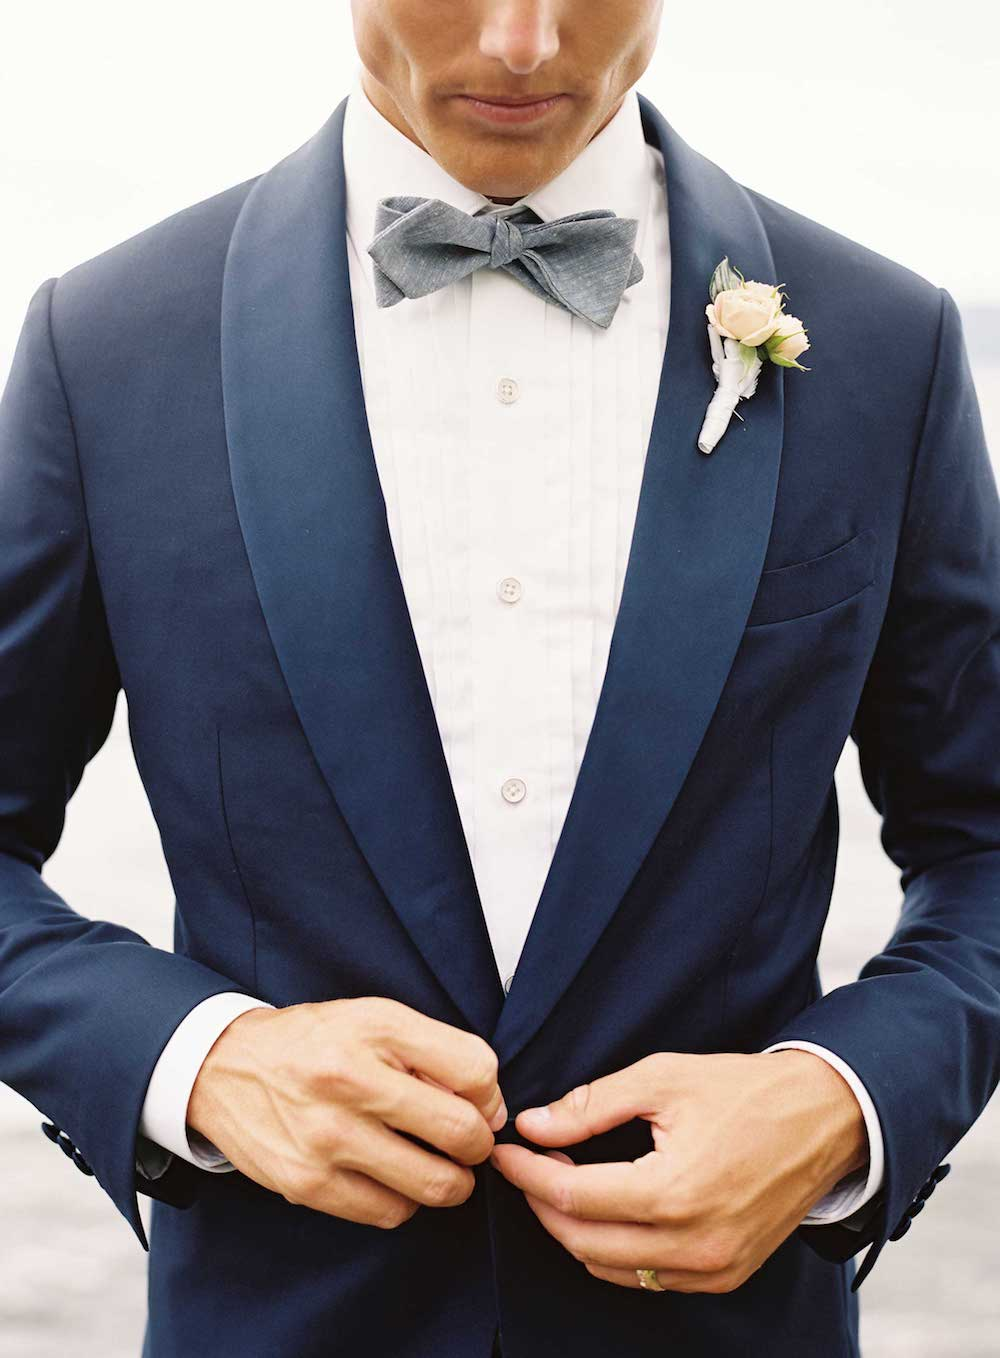 grooming tips for the groom before the wedding